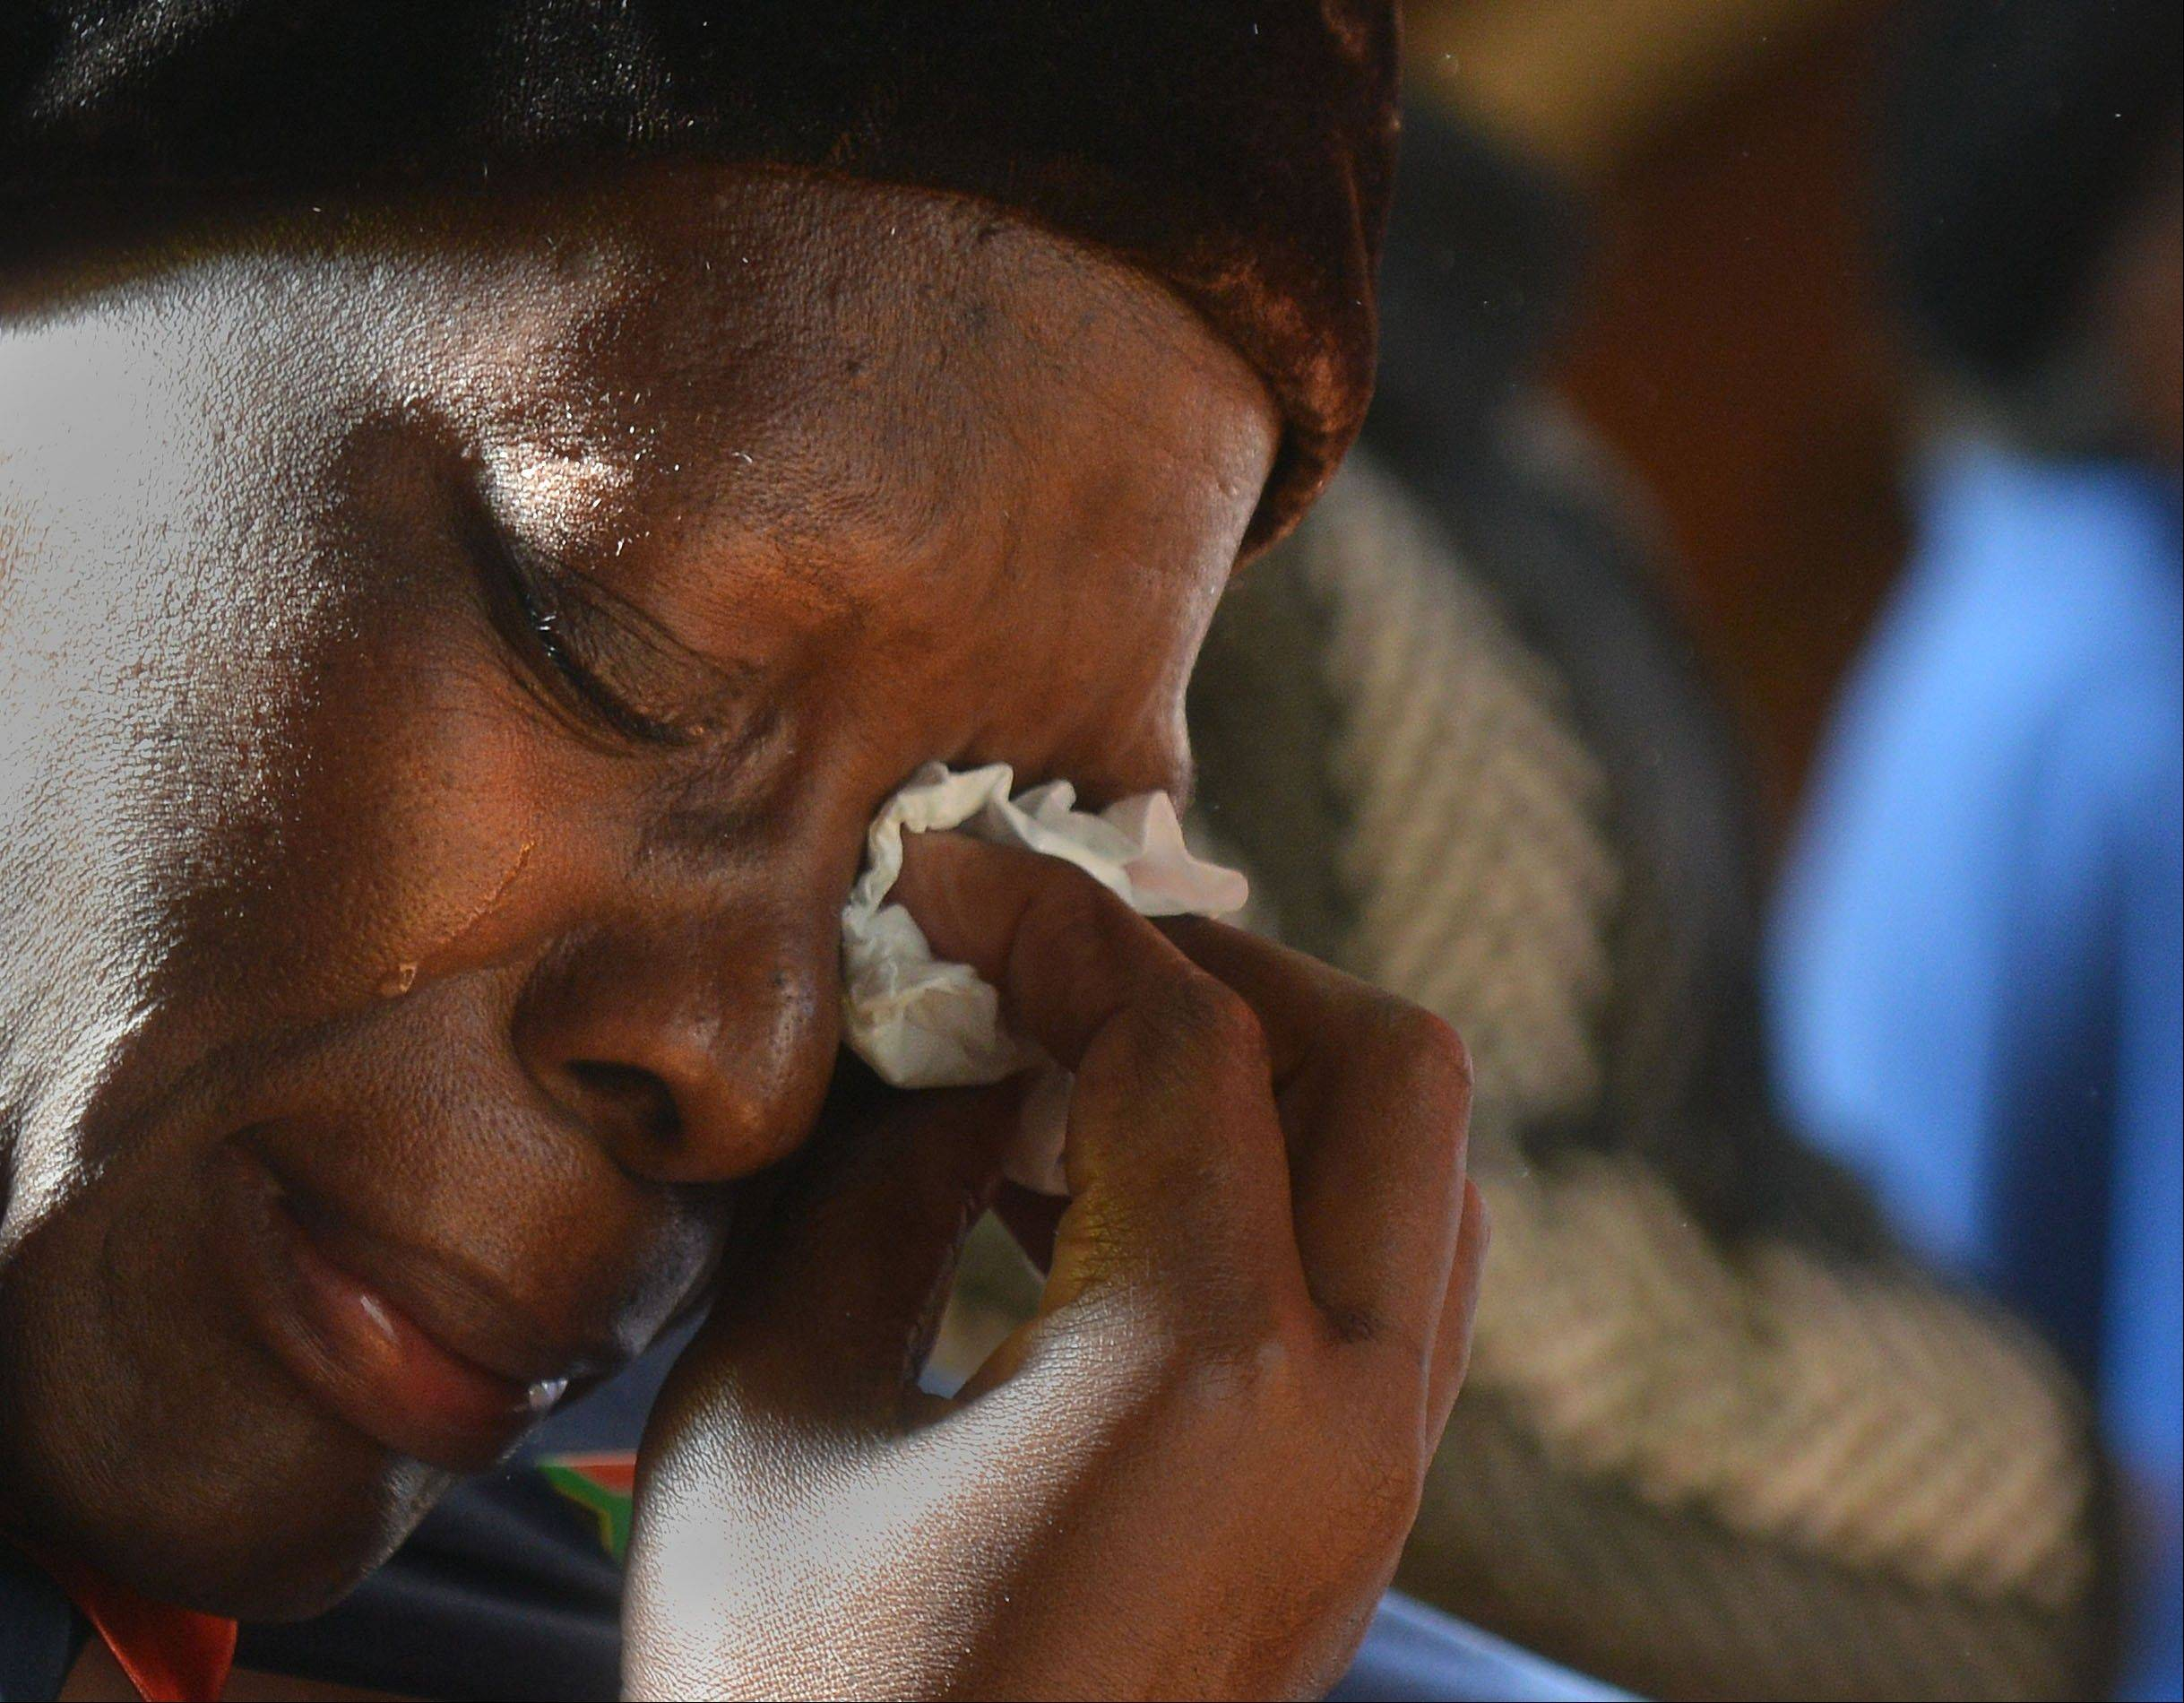 A worshipper weeps as she attends Mass at a Catholic church in Soweto, South Africa, Sunday. Churchgoers were urged to pray for former President Nelson Mandela, who has been hospitalized with a lung infection.